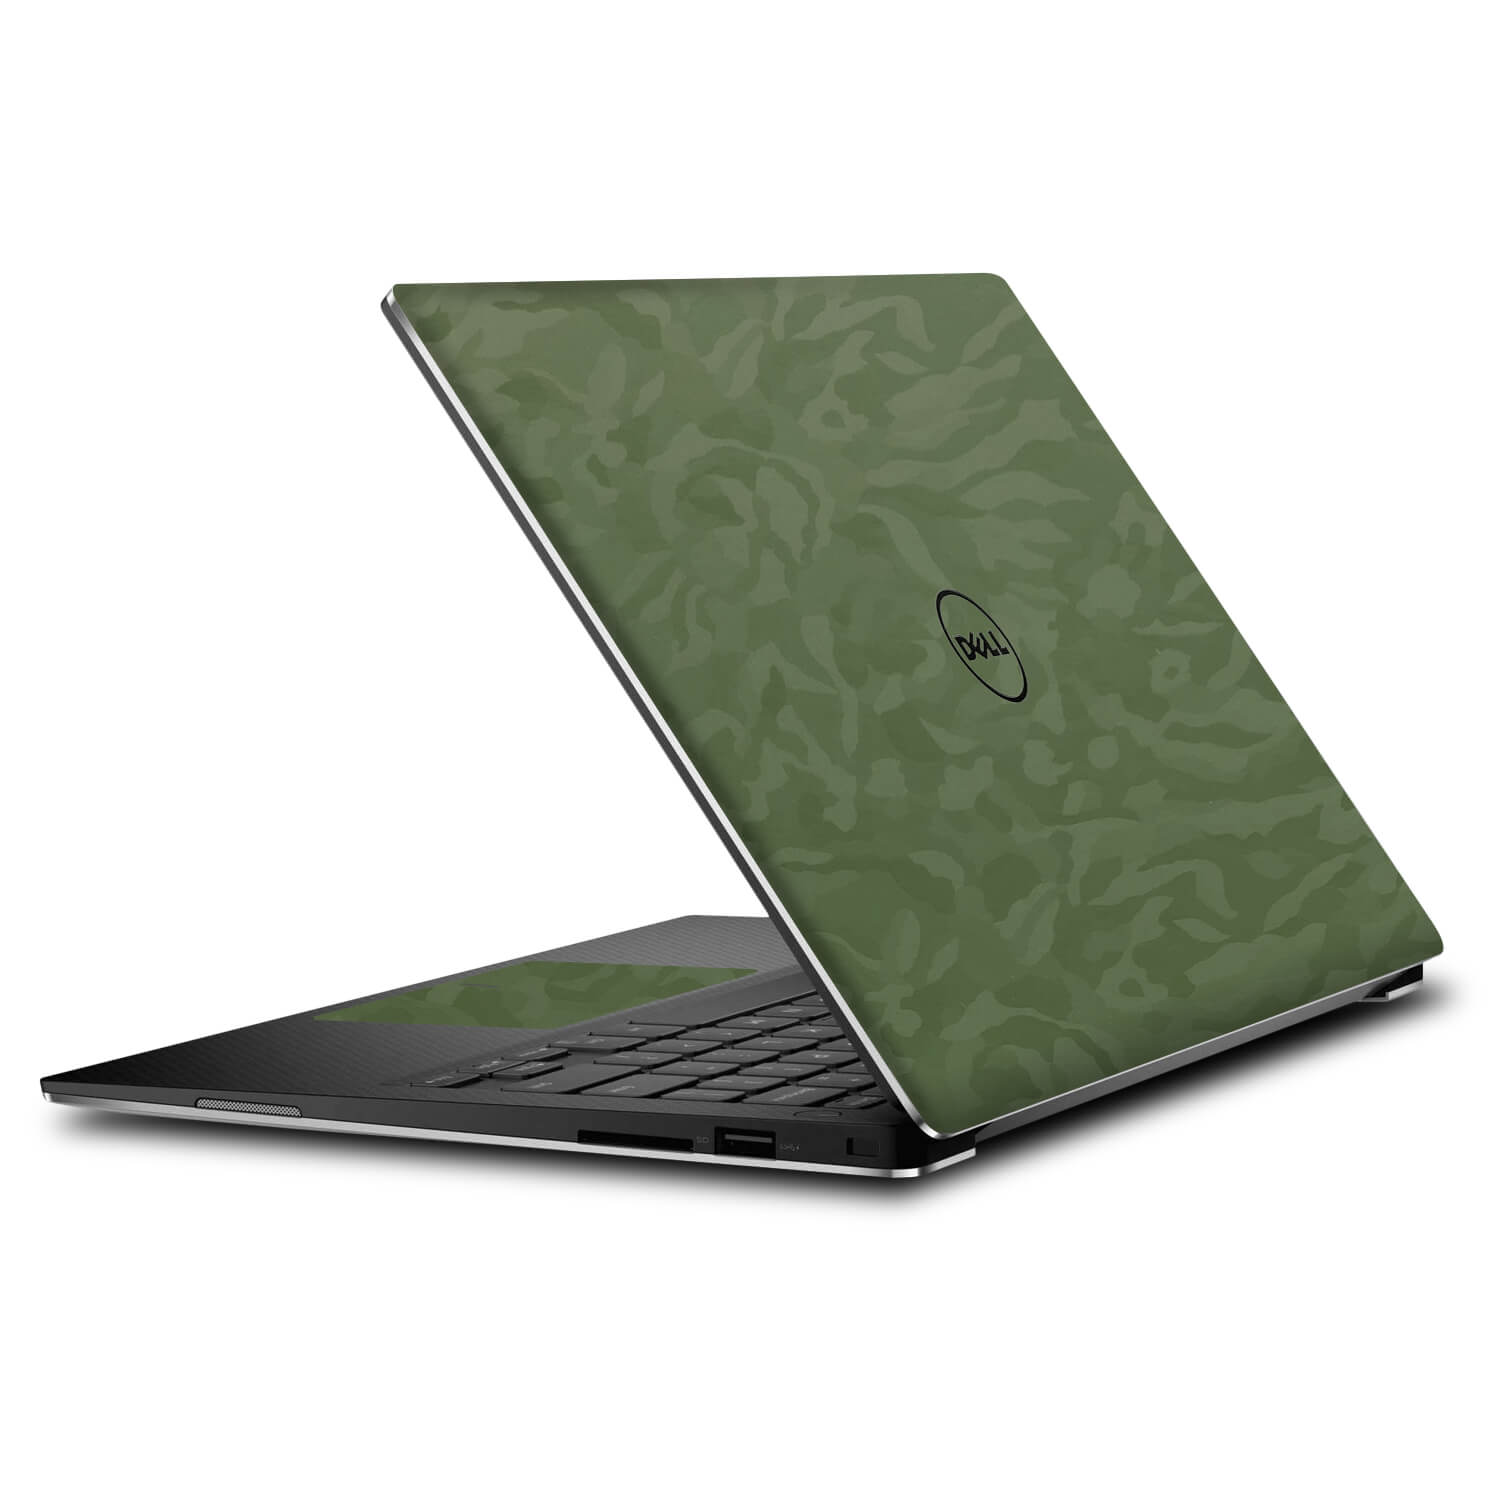 Dell XPS 15 (9560) Skins